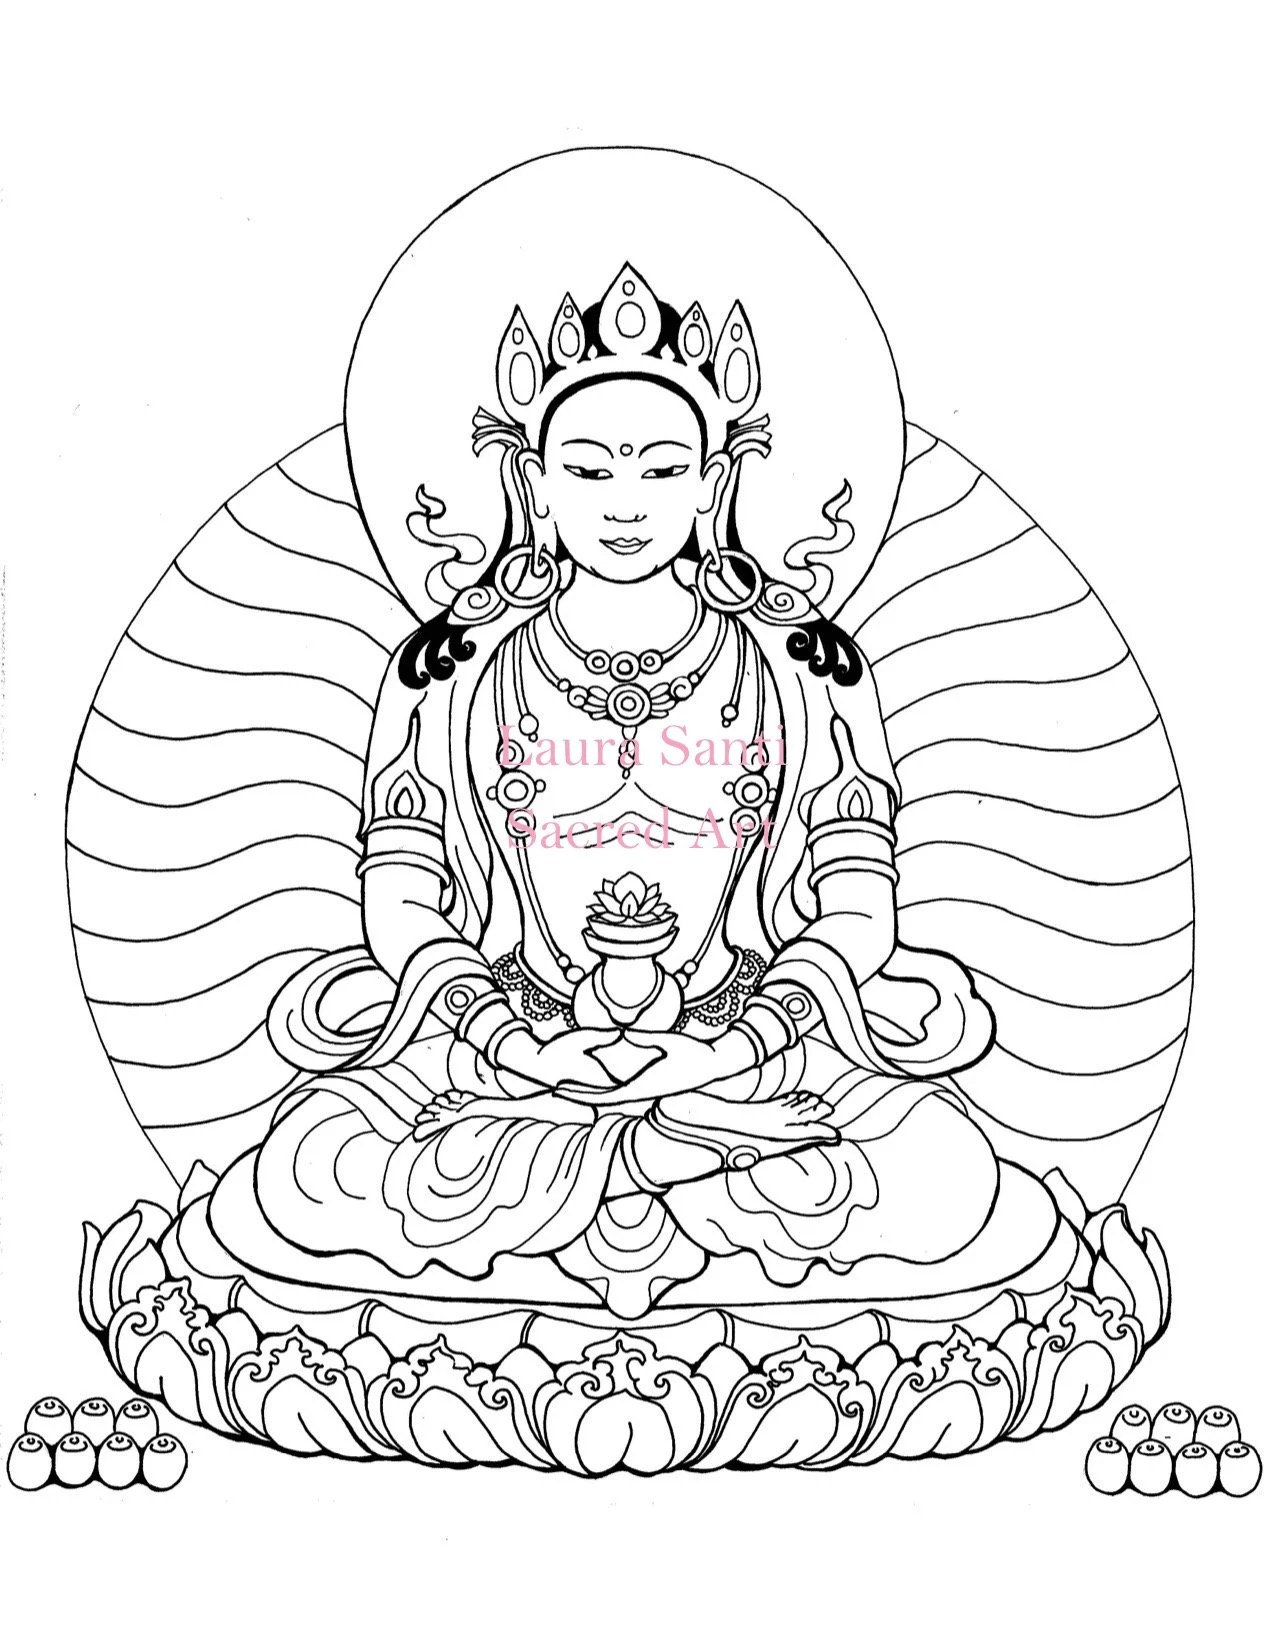 Adult coloring book page downloadable Amitayus Buddha of